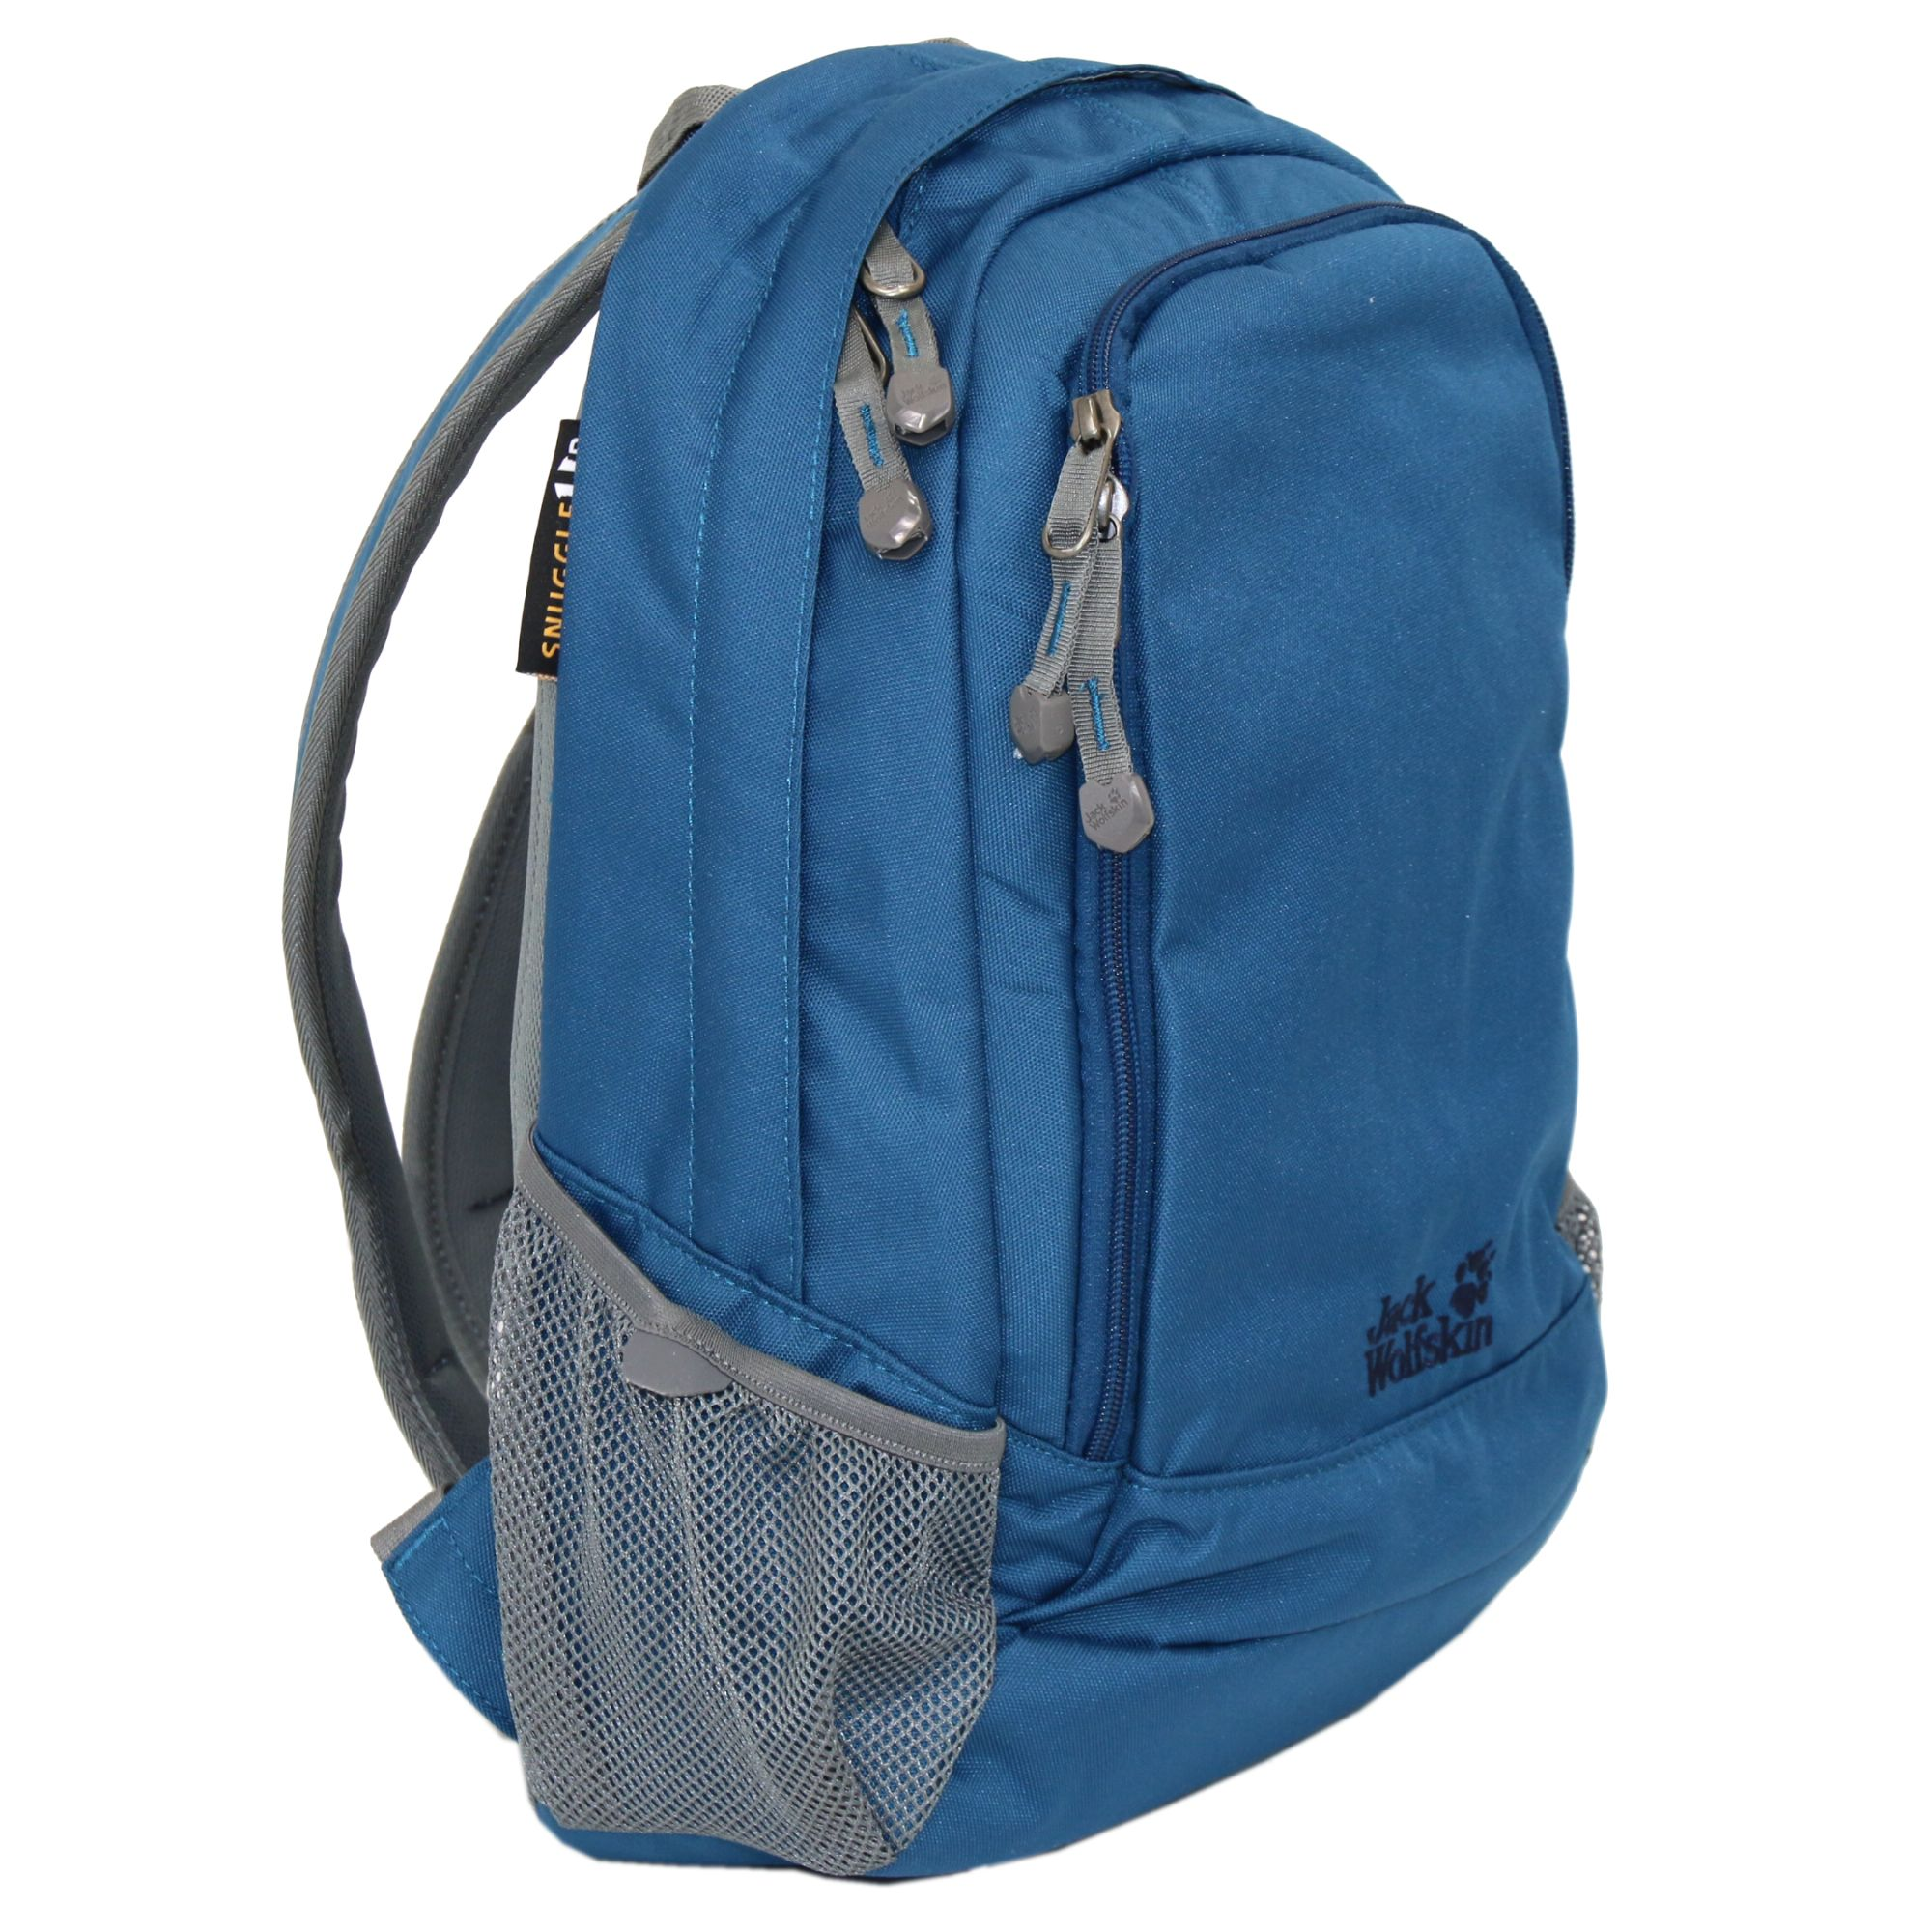 jack wolfskin perfect day rucksack tagesrucksack ebay. Black Bedroom Furniture Sets. Home Design Ideas